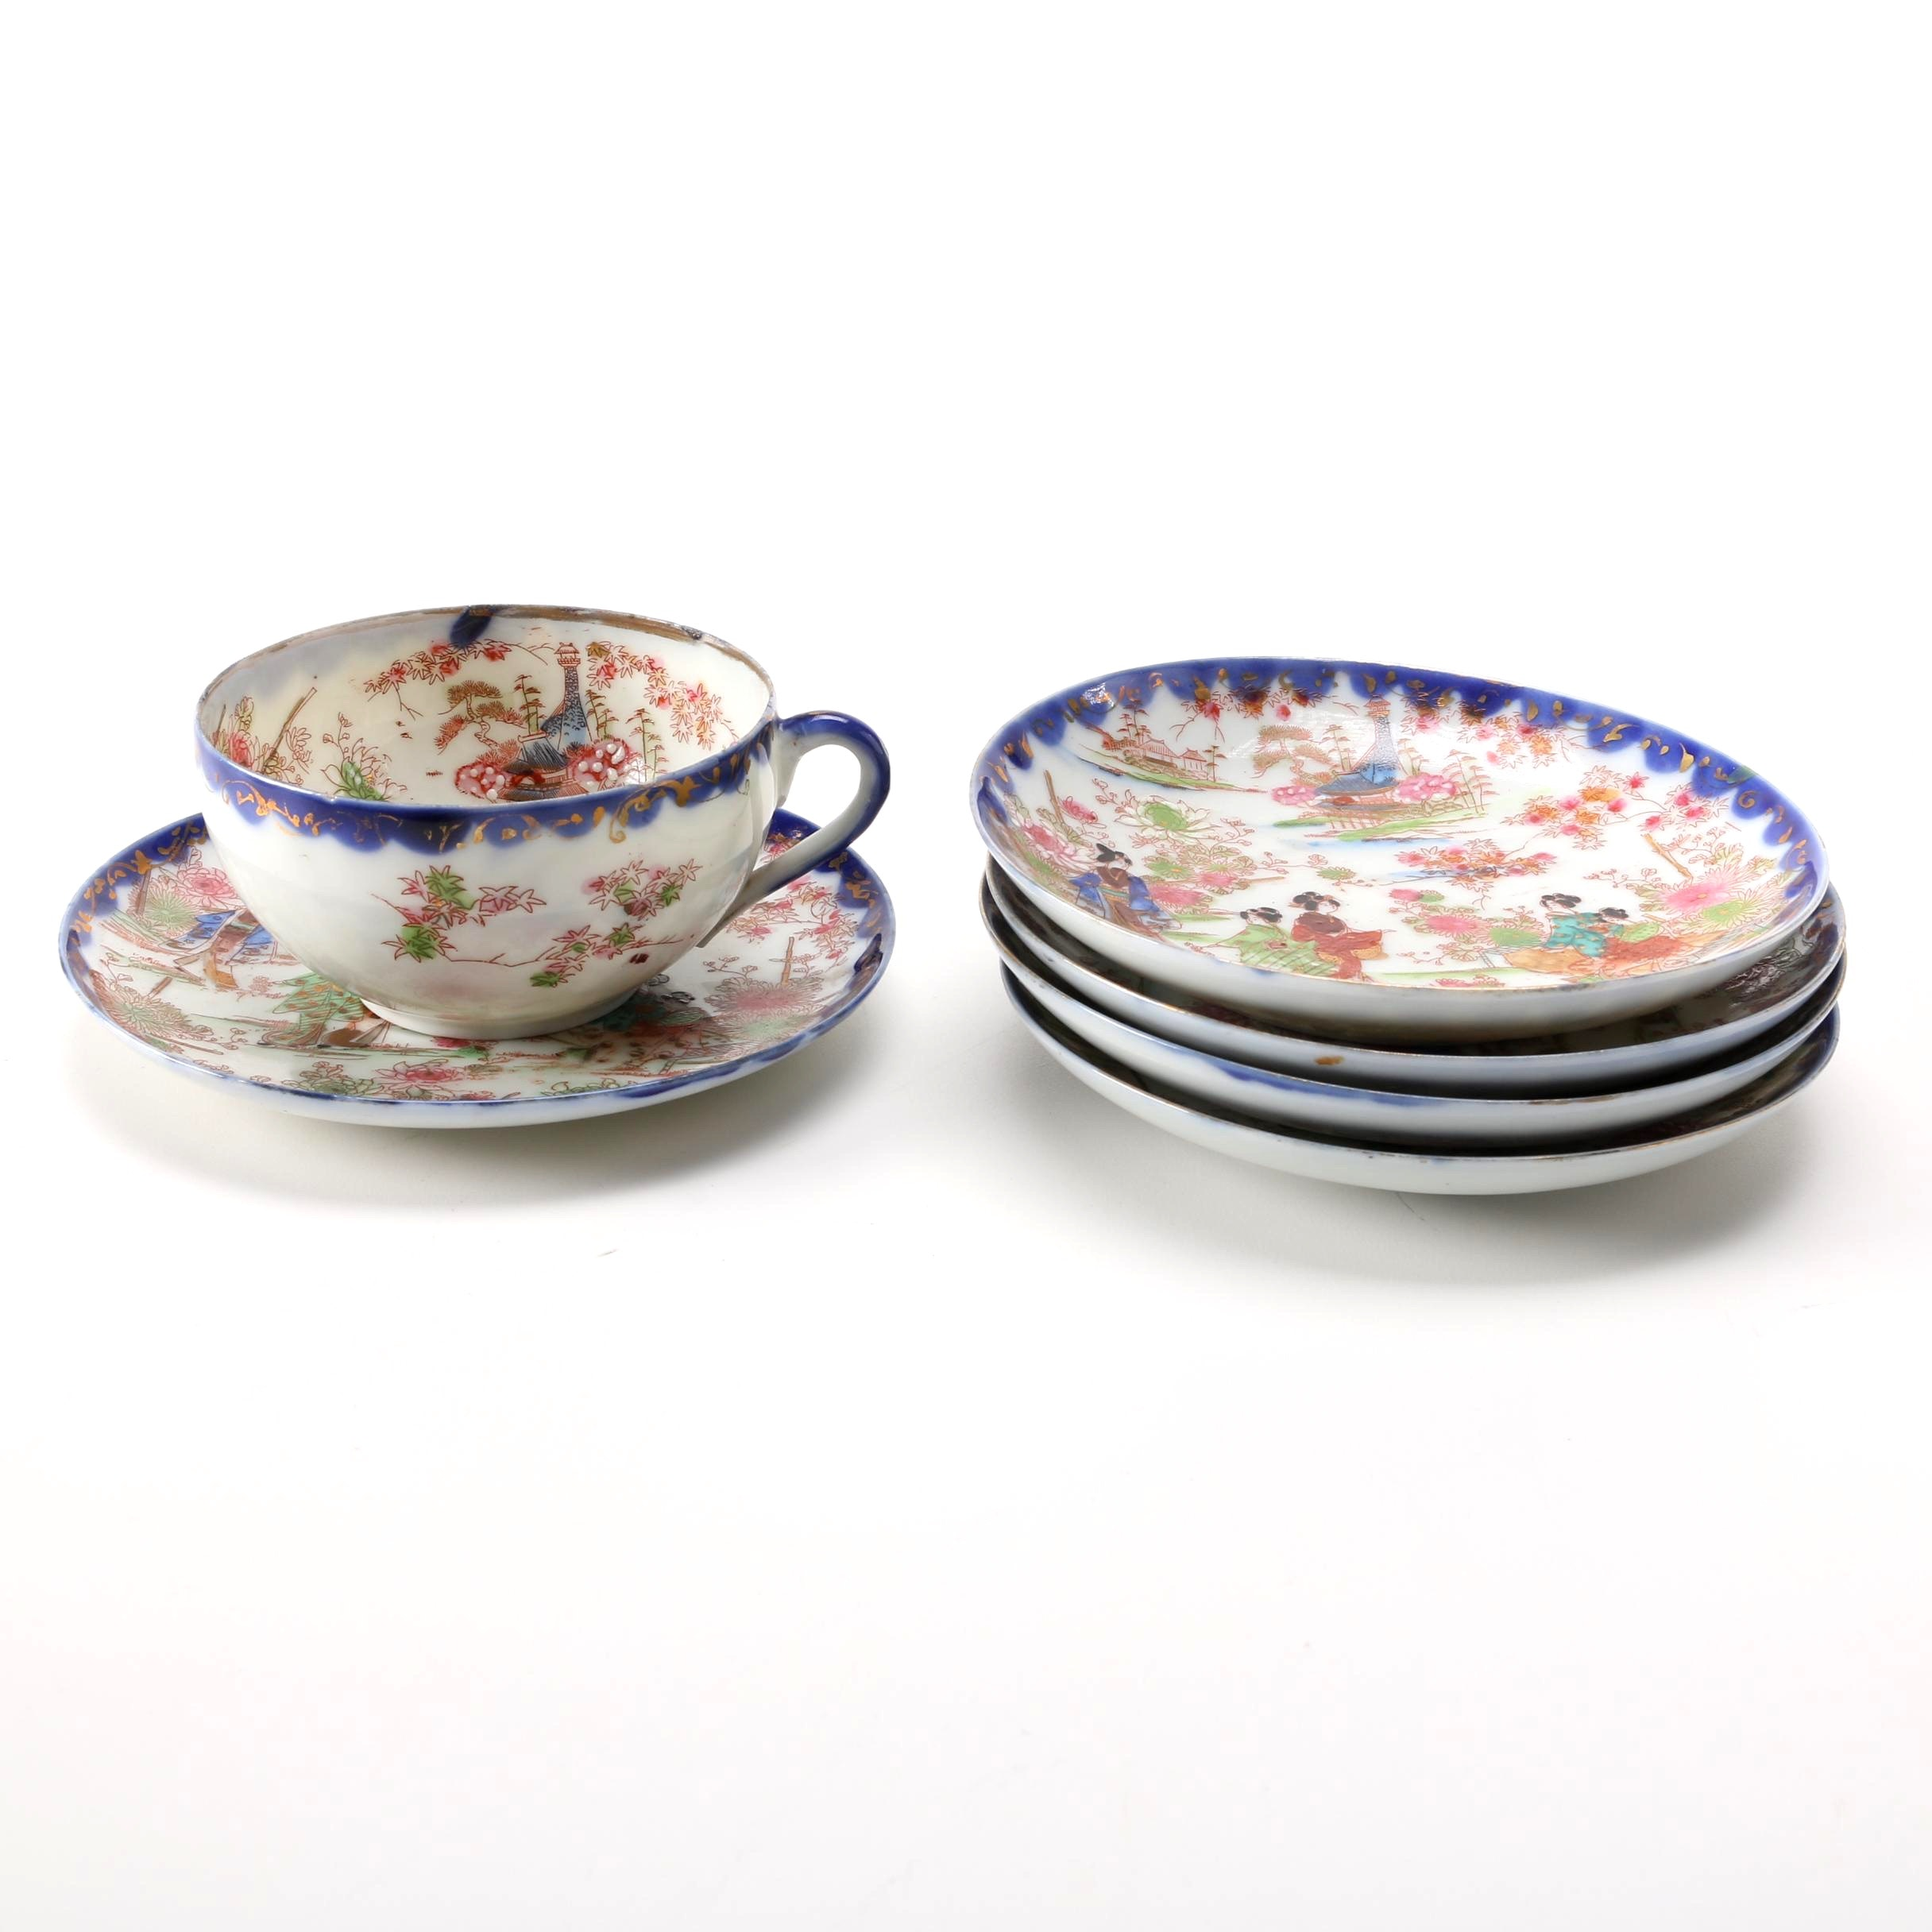 Hand Painted Japanese Saucers and Teacup